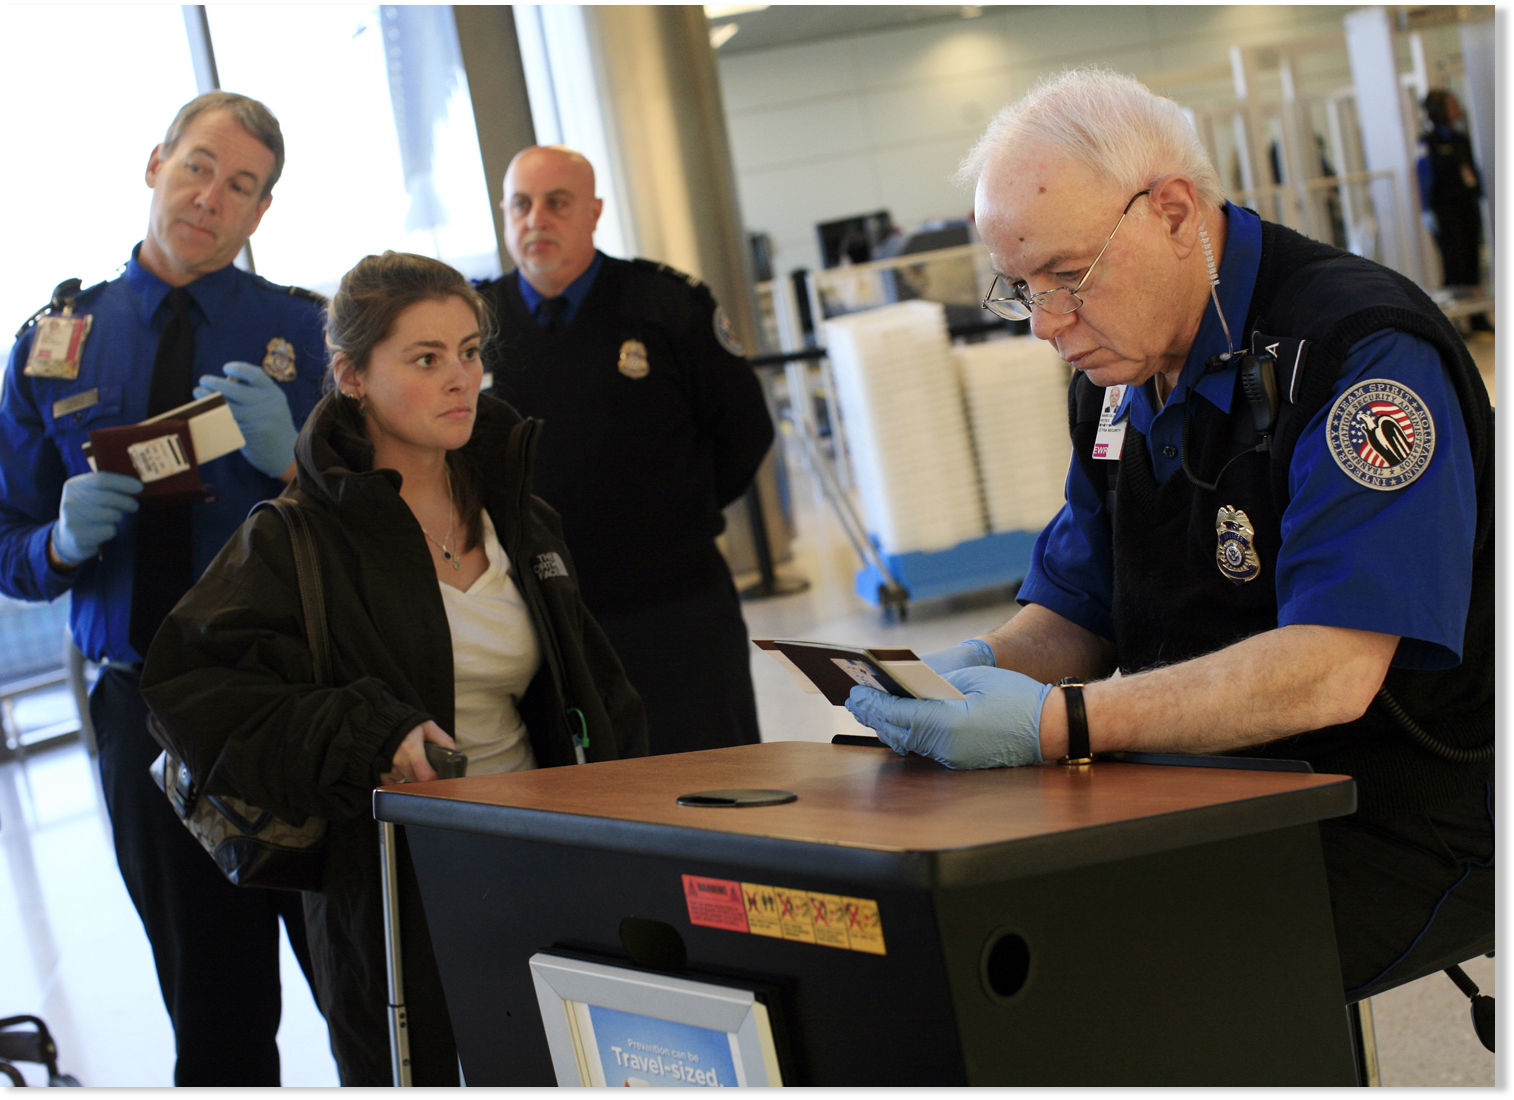 g cvr 091229 tsa 402p ... and force 95 year old grandmothers to take off their adult diapers?